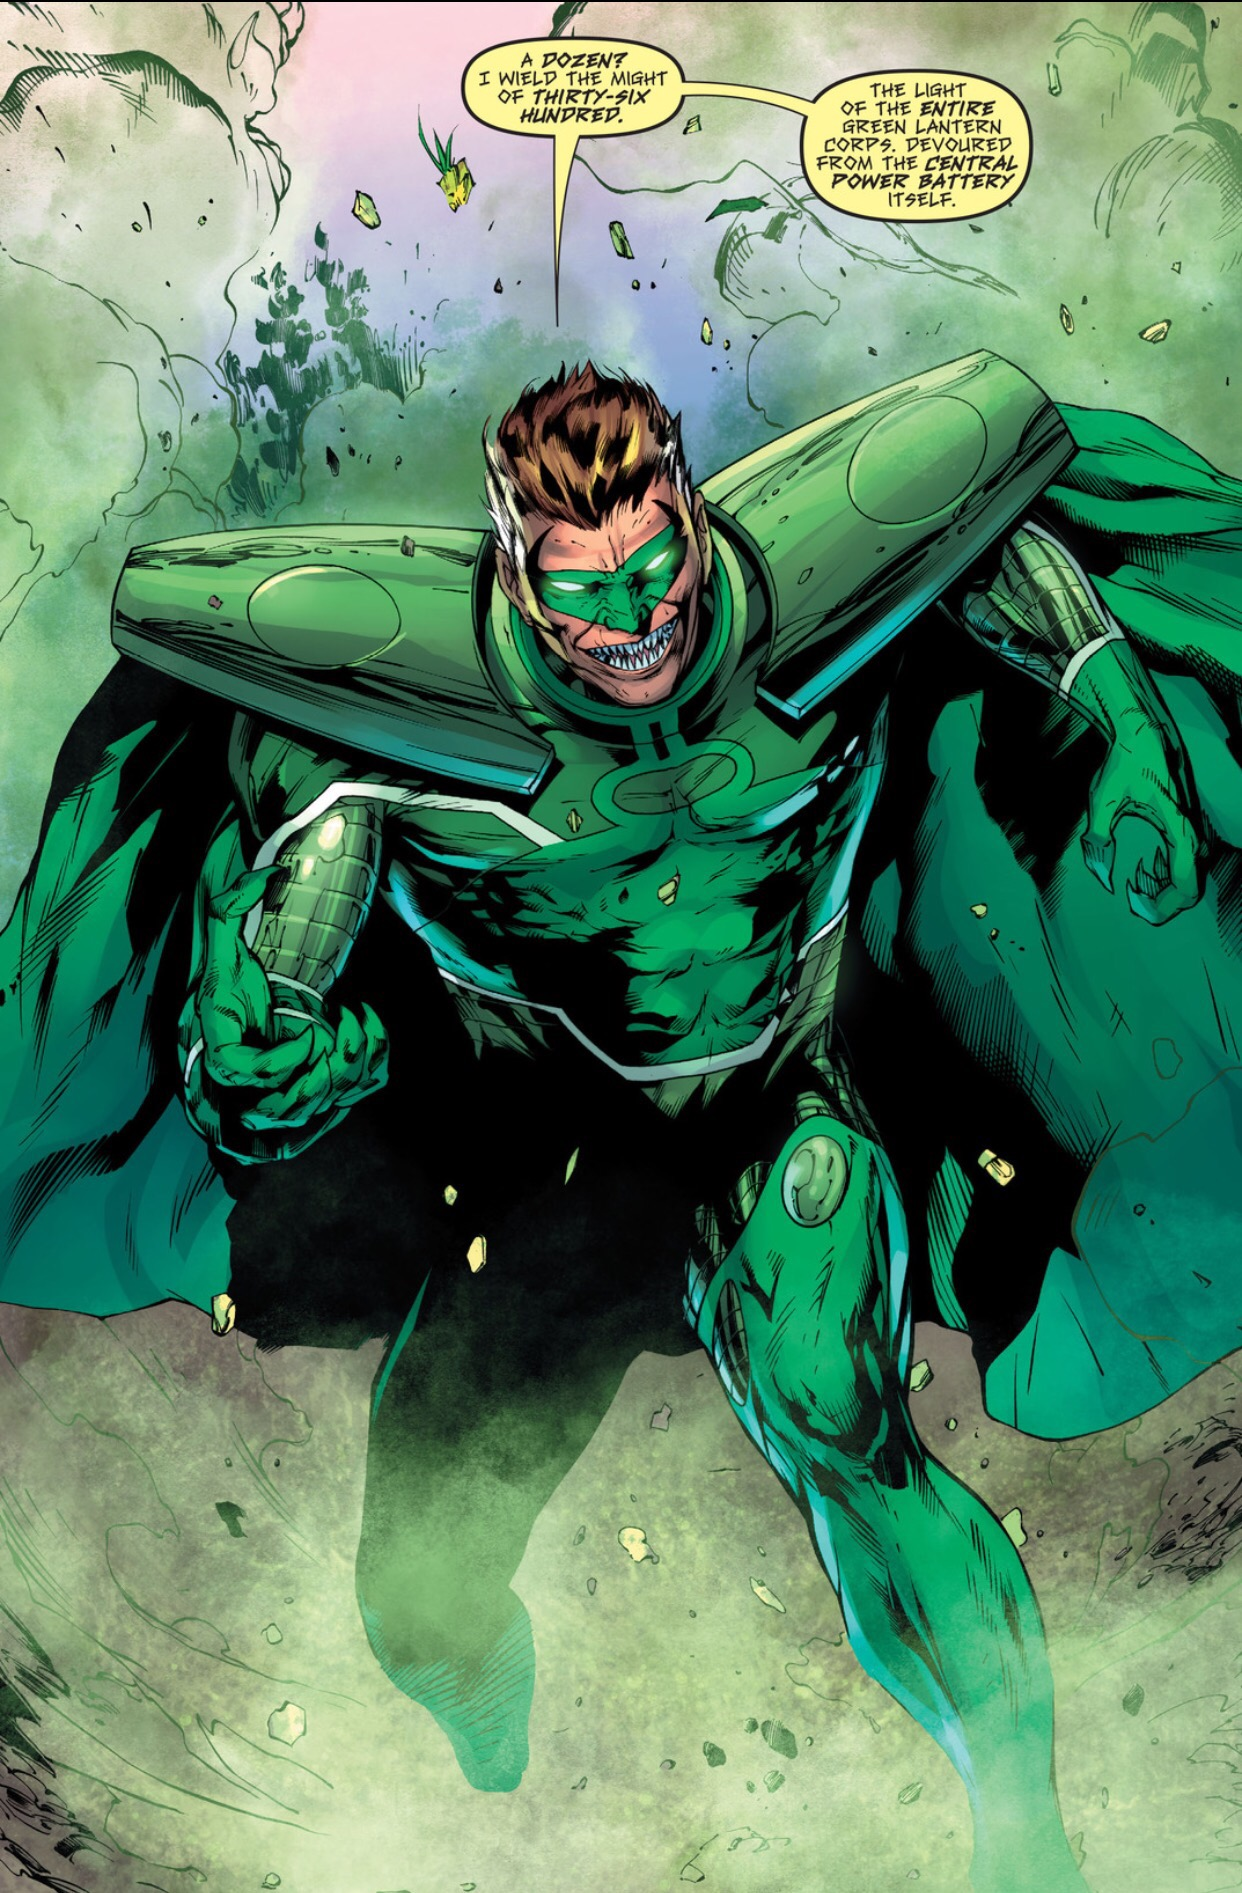 images of the green lantern